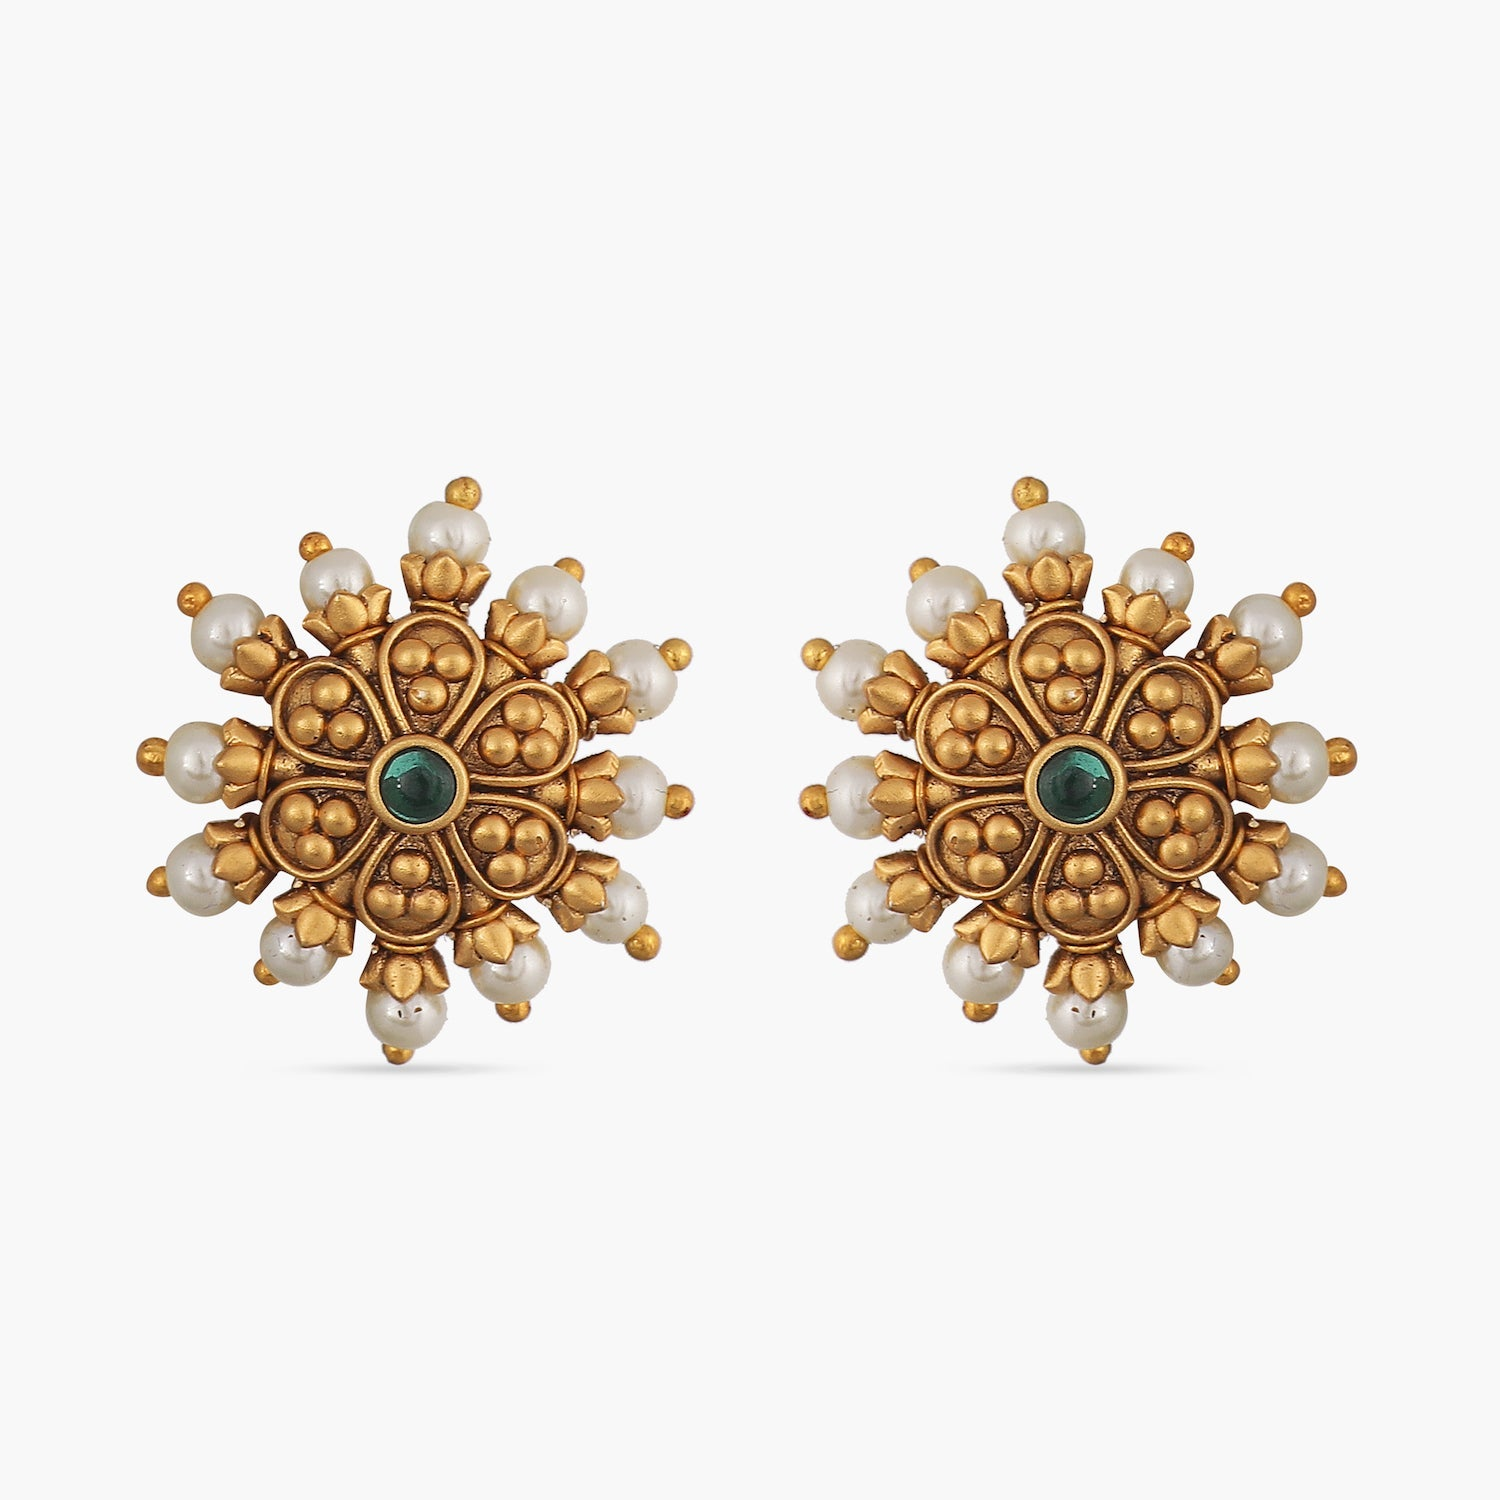 Sofia Pearl Antique Earrings